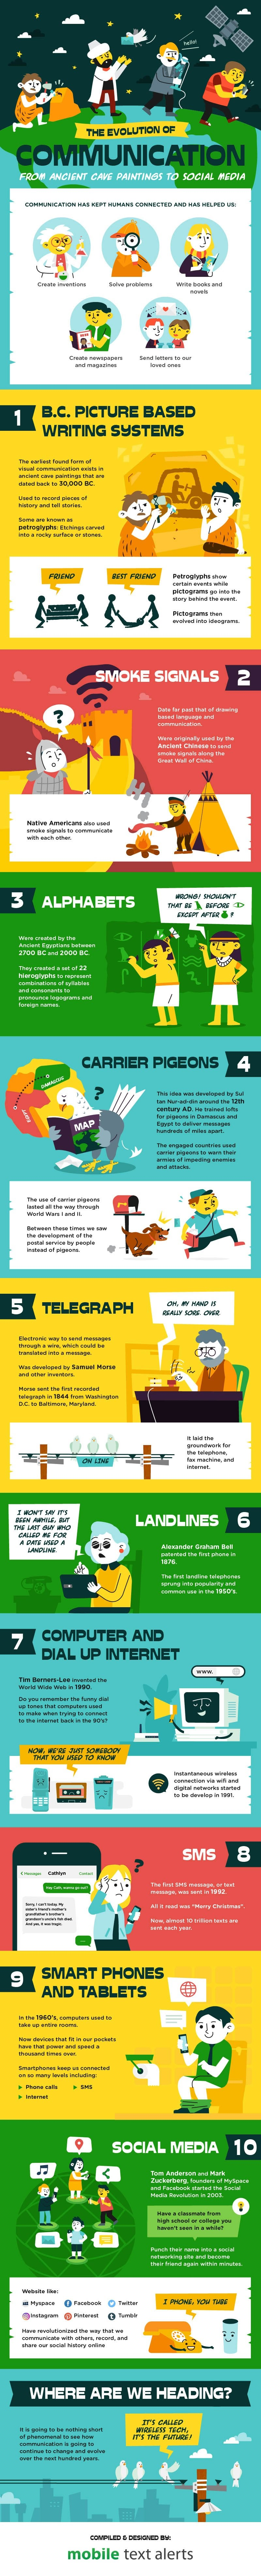 The Evolution of Communication - #infographic